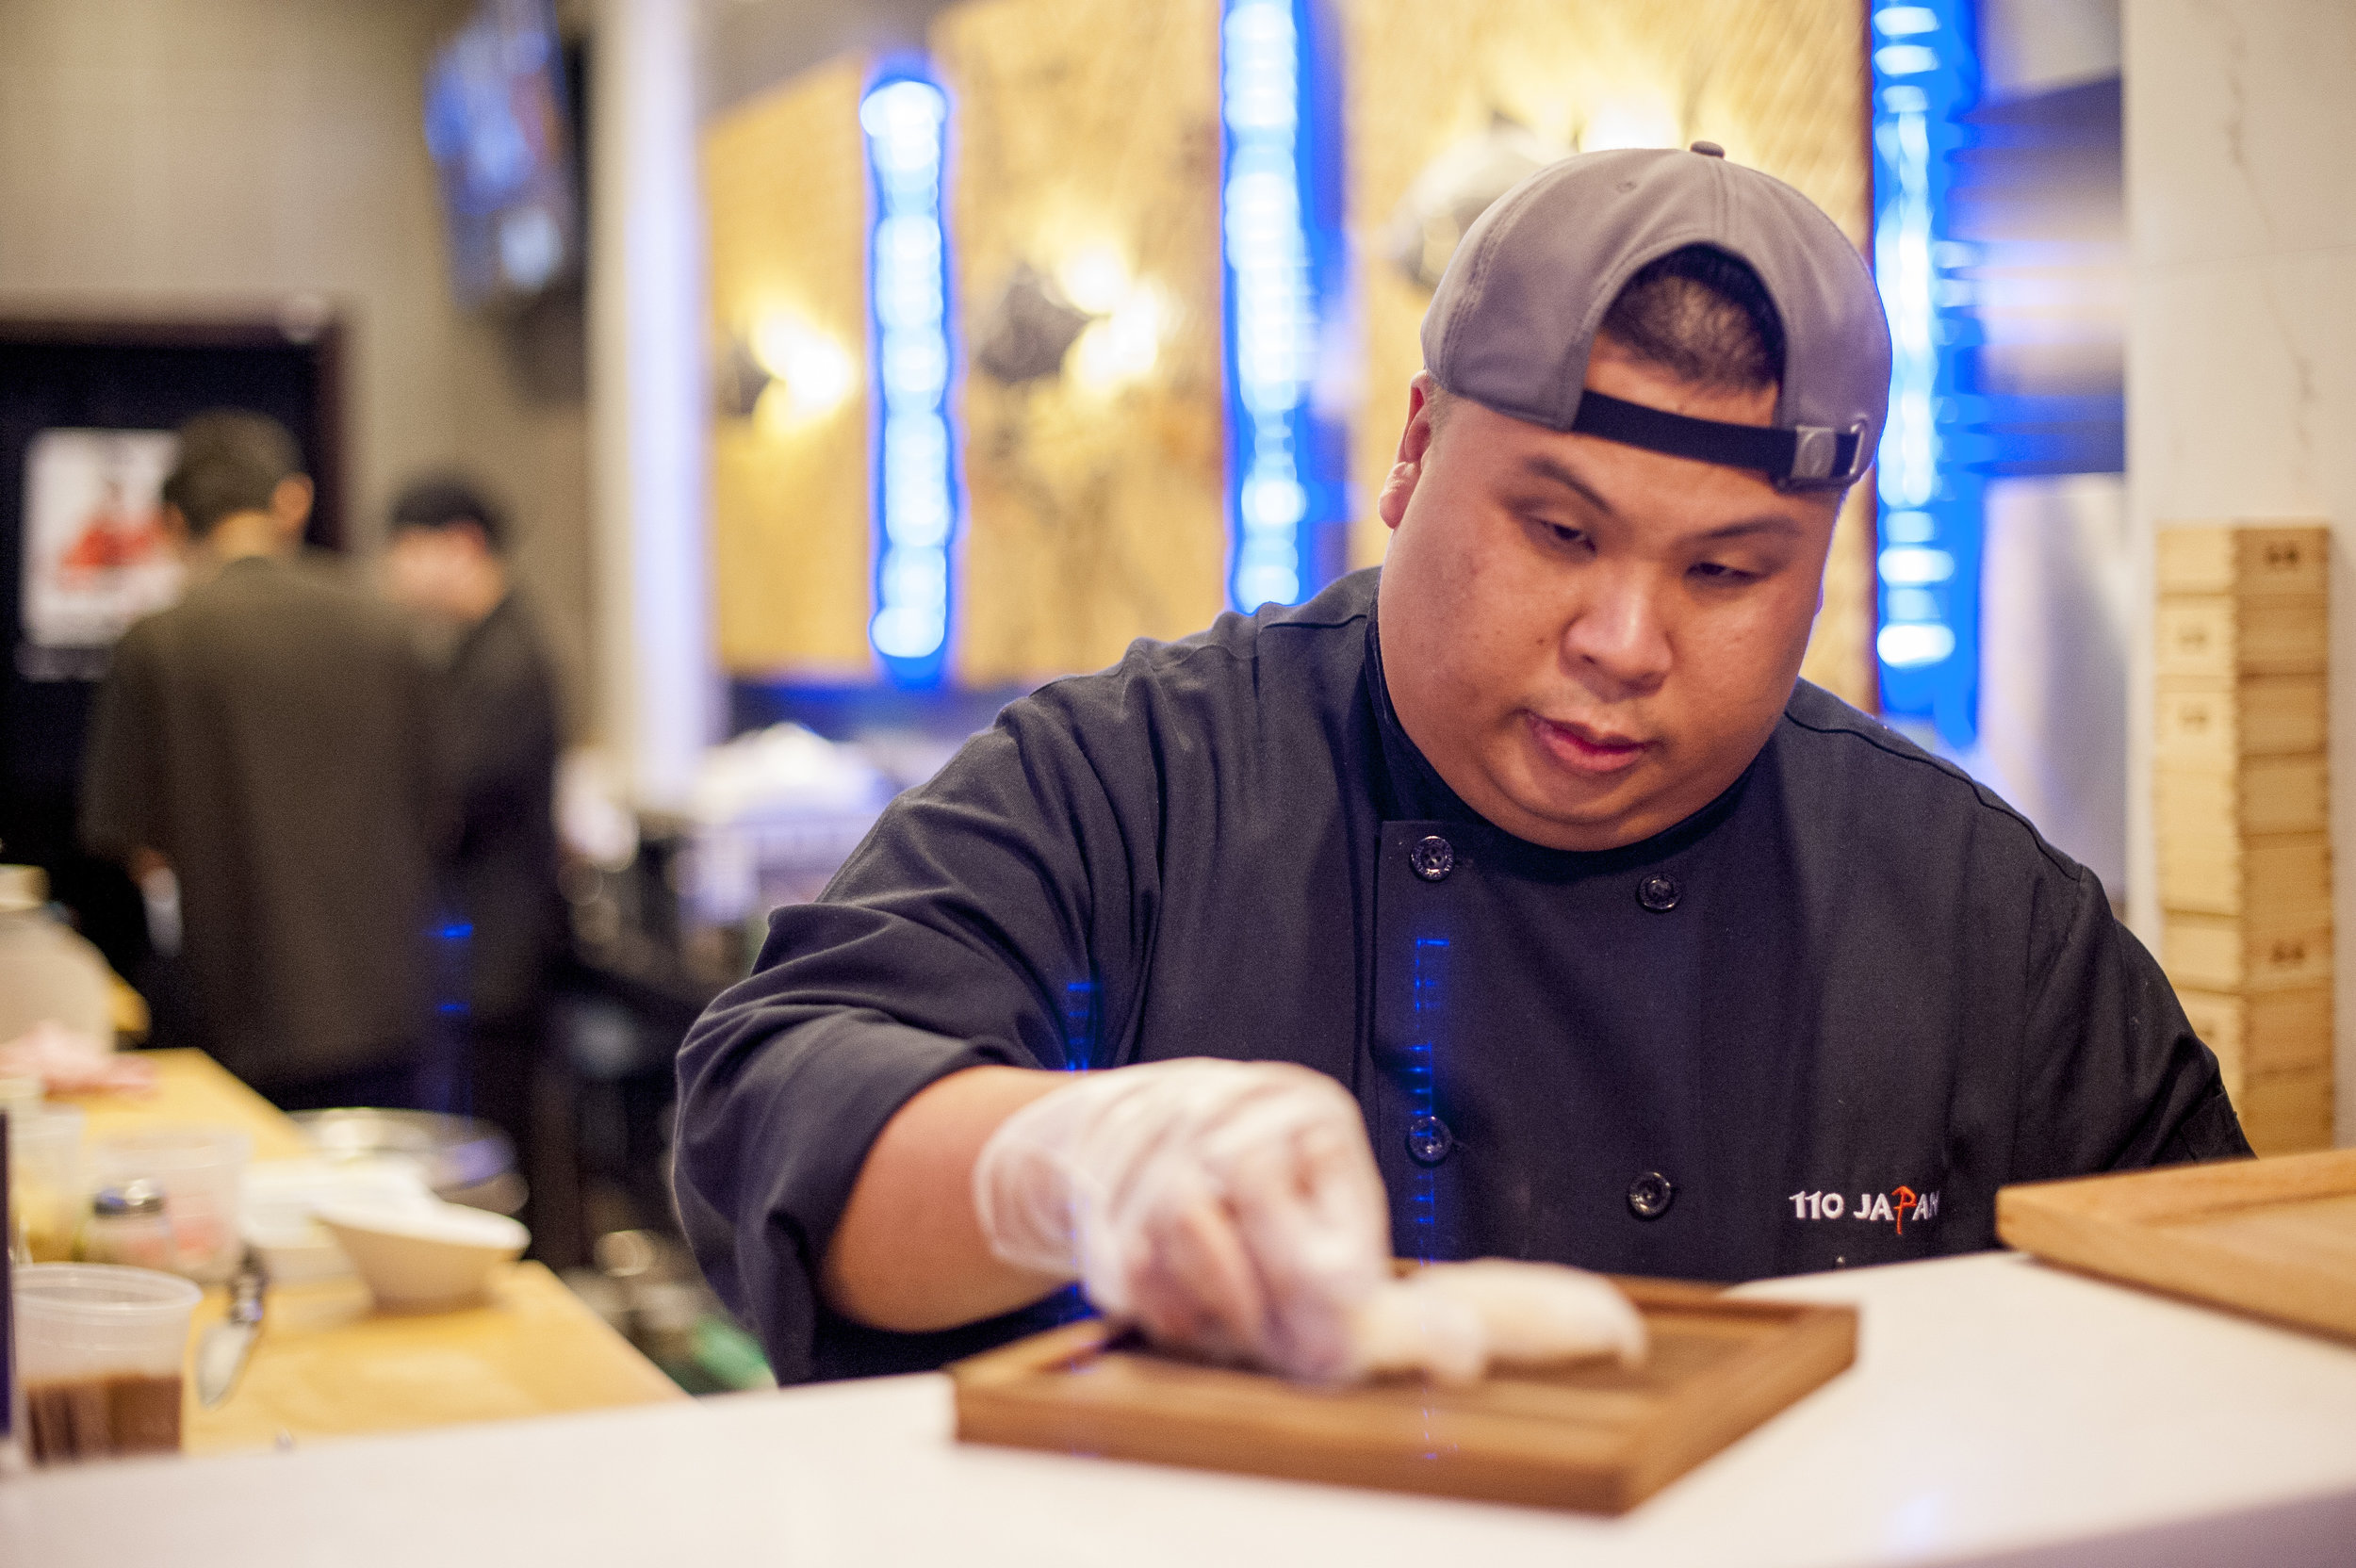 Chee Meng So, executive chef of 110 Japan, prepares some sushi, believing that food made from the heart always tastes better.